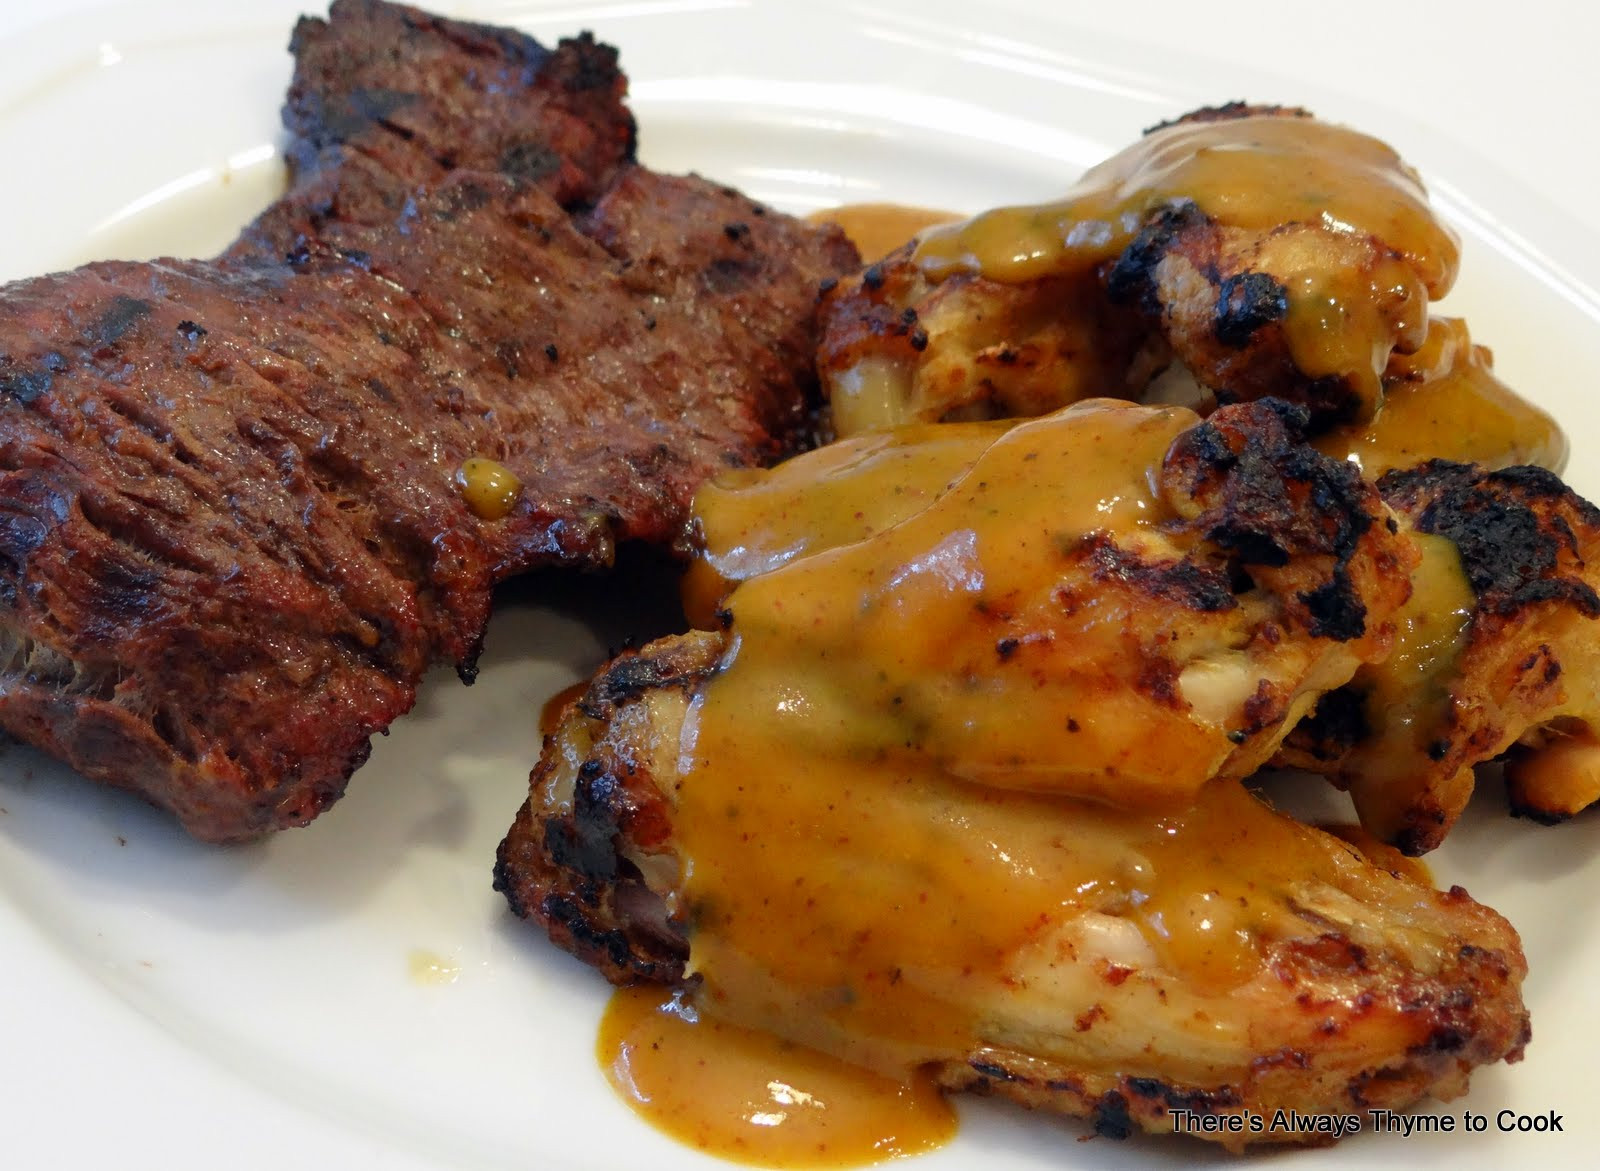 South Carolina Bbq Sauce  There s always thyme to cook South Carolina BBQ Sauce